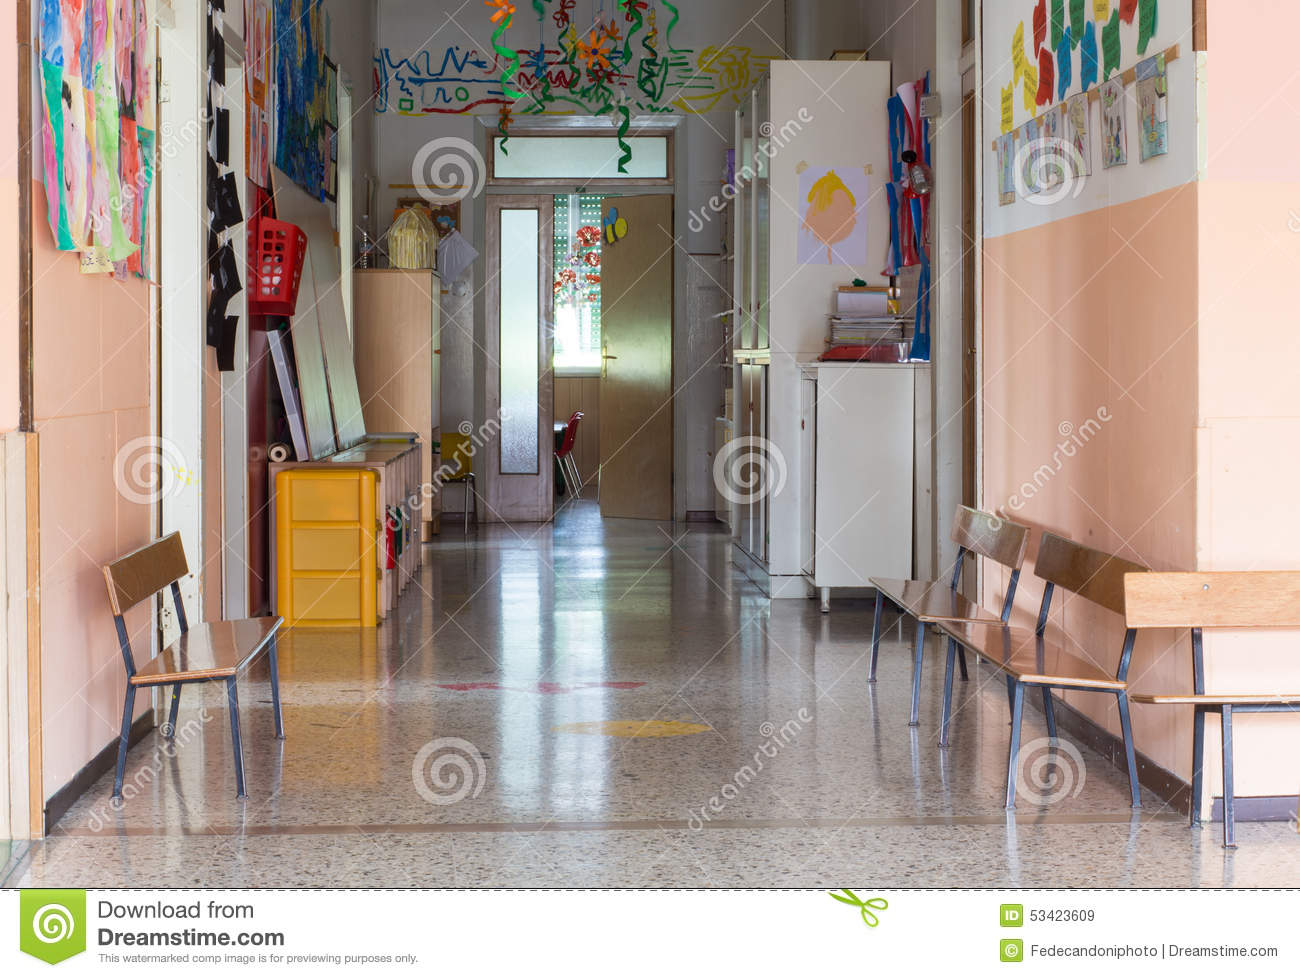 Hallway of a nursery for children